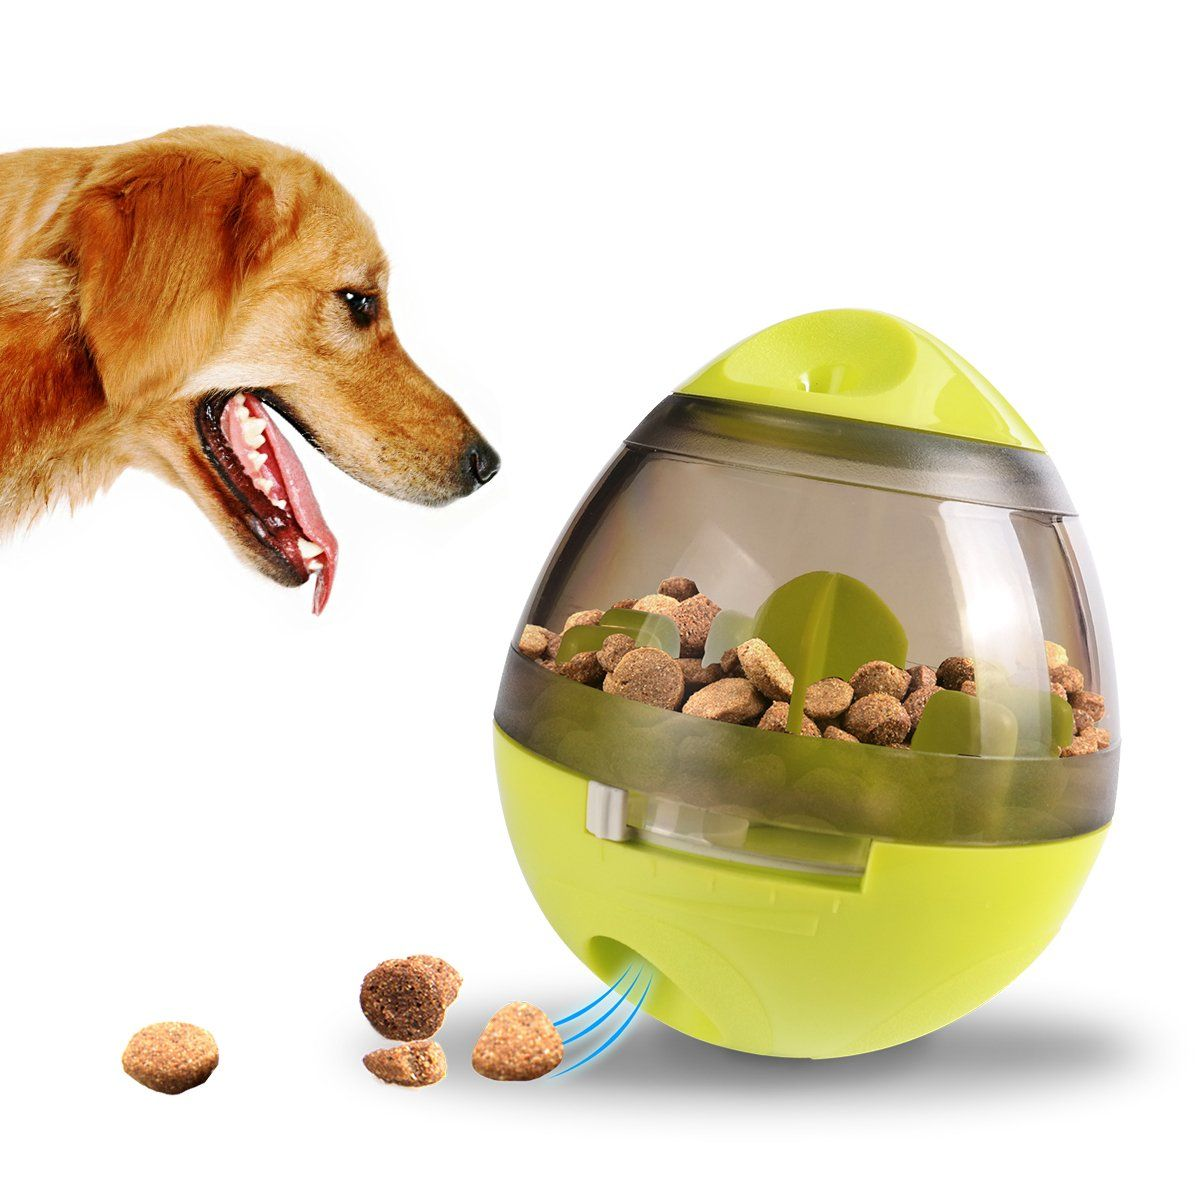 Caferria Pet Iq Treat Ball Interactive Food Dispensing Ball For Dogs And Cats Training Playing Chewing Ball M Pet Food Dispenser Food Animals Dog Cat